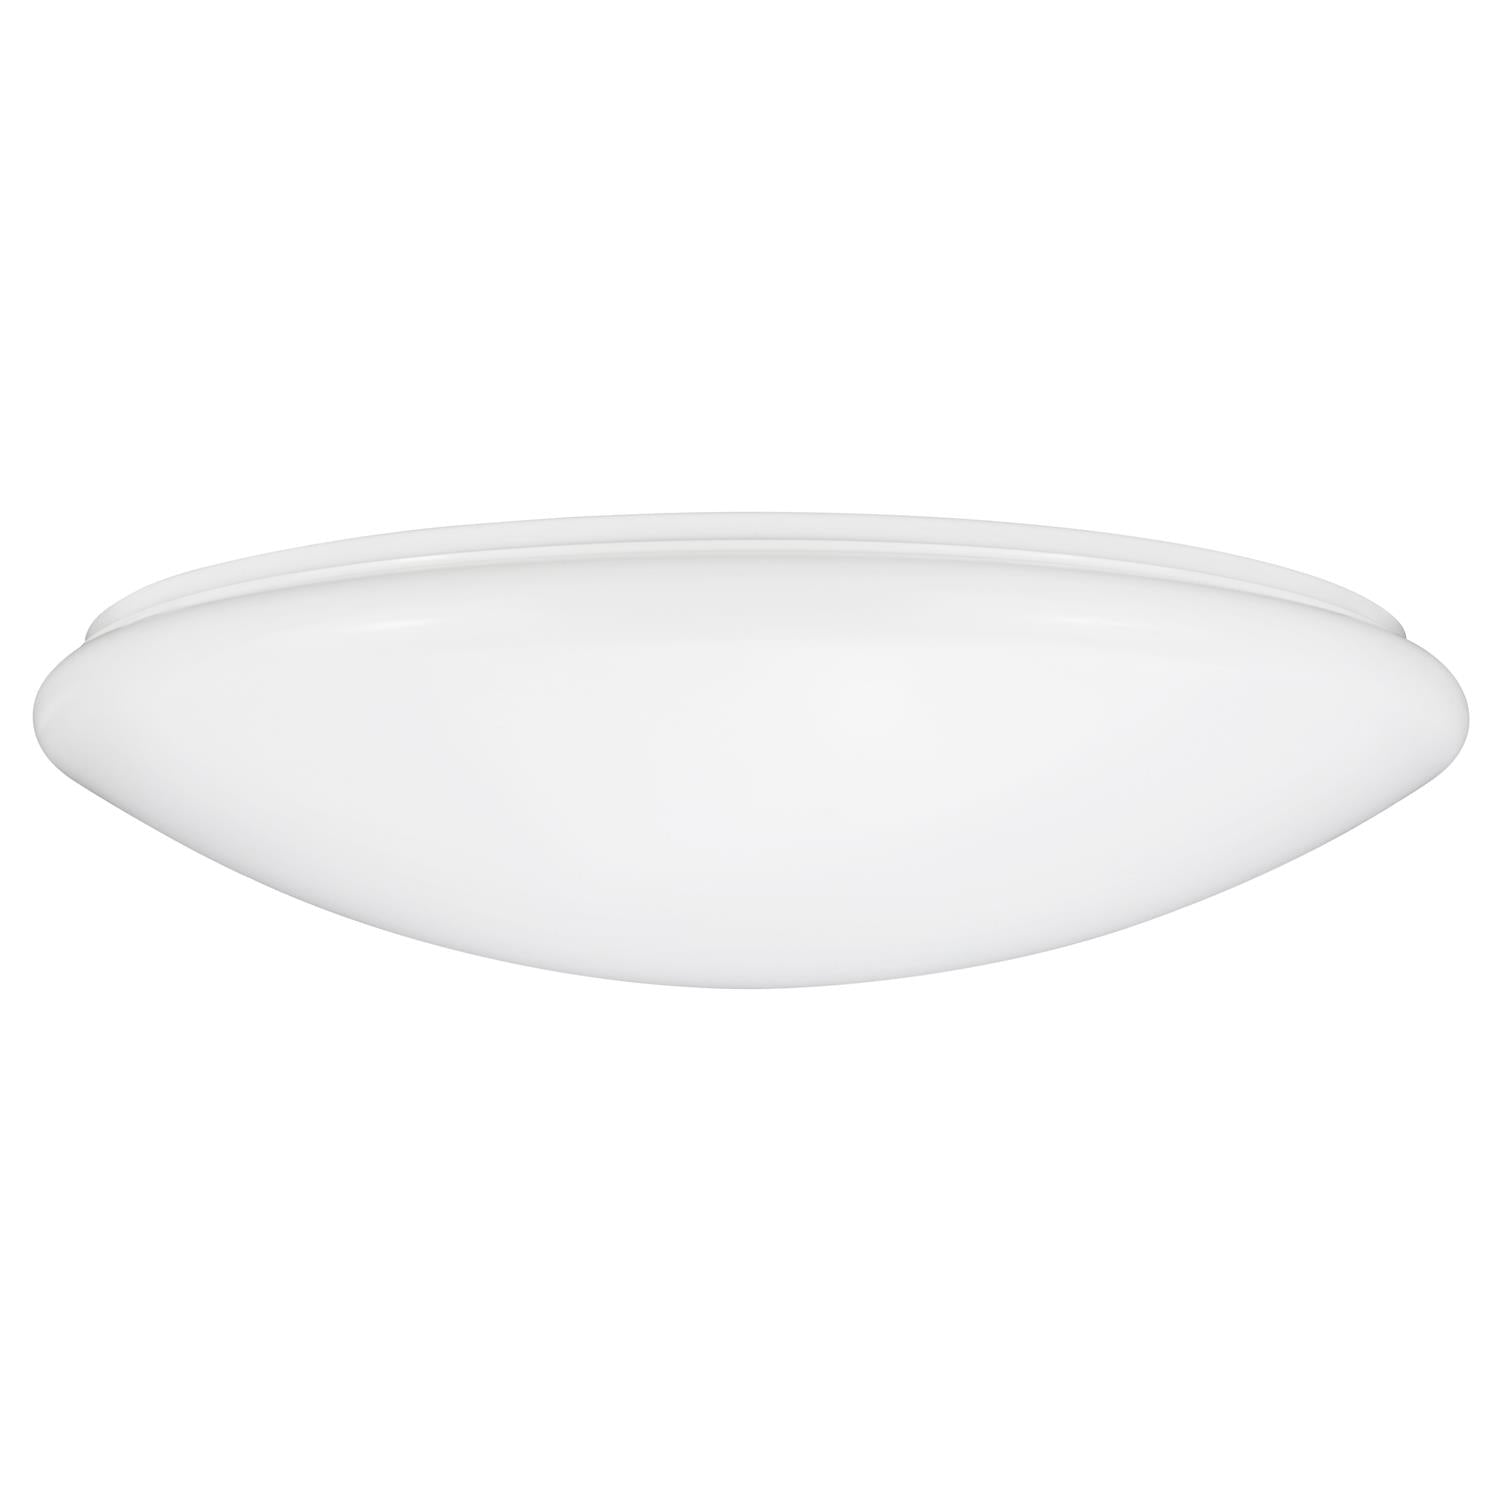 SUNLITE 16W 11in. Round Mushroom Integrated LED 4000K Cool White